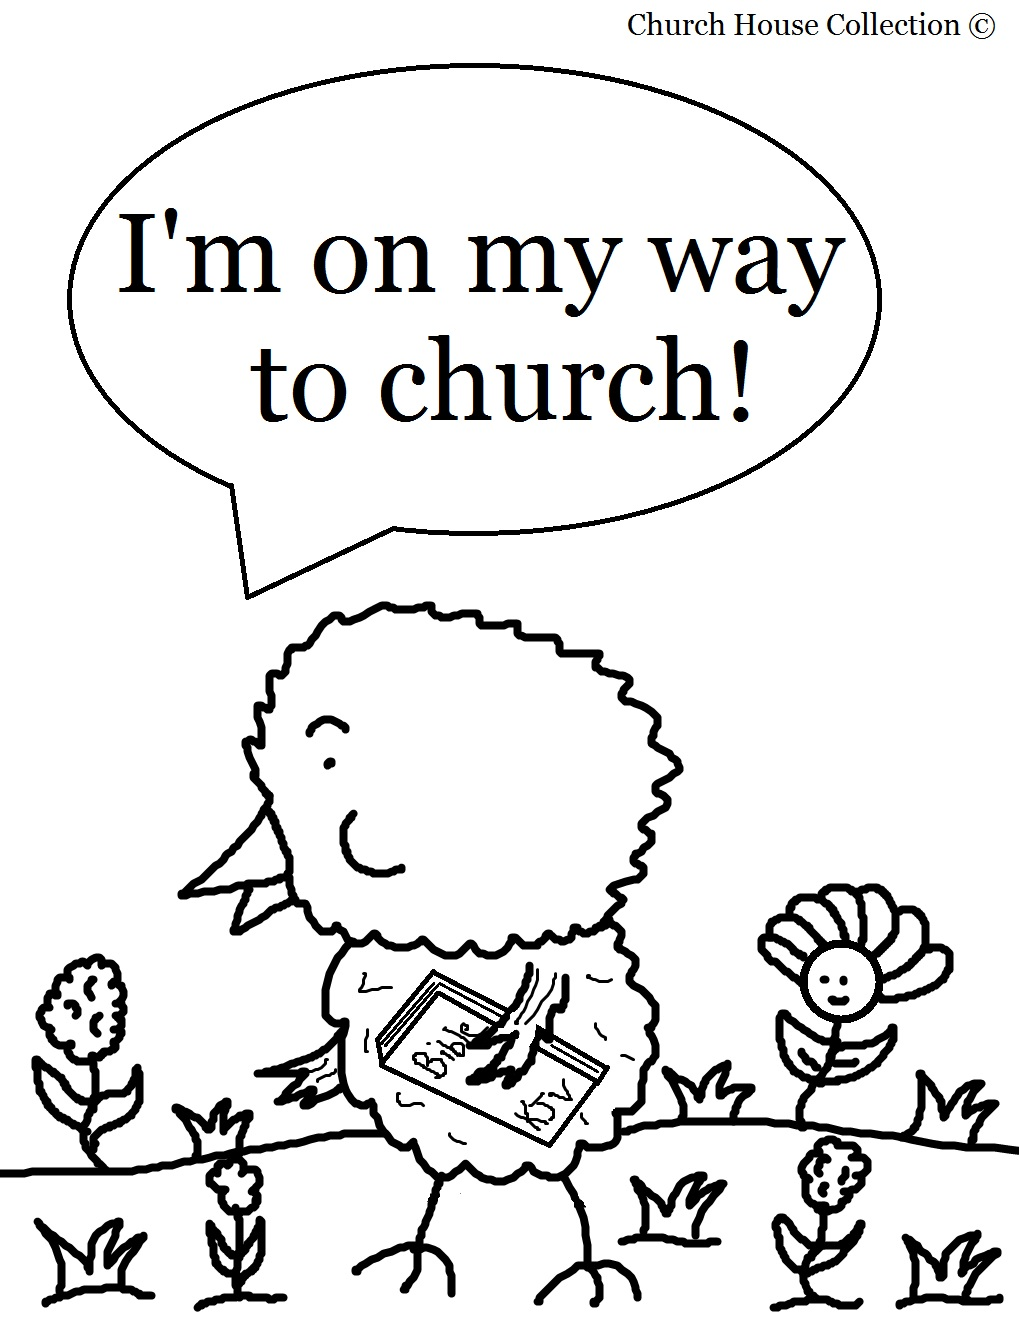 Coloring Pages Index Children's Sermons for Sermon 4 Kids - free sunday school coloring pages for kids